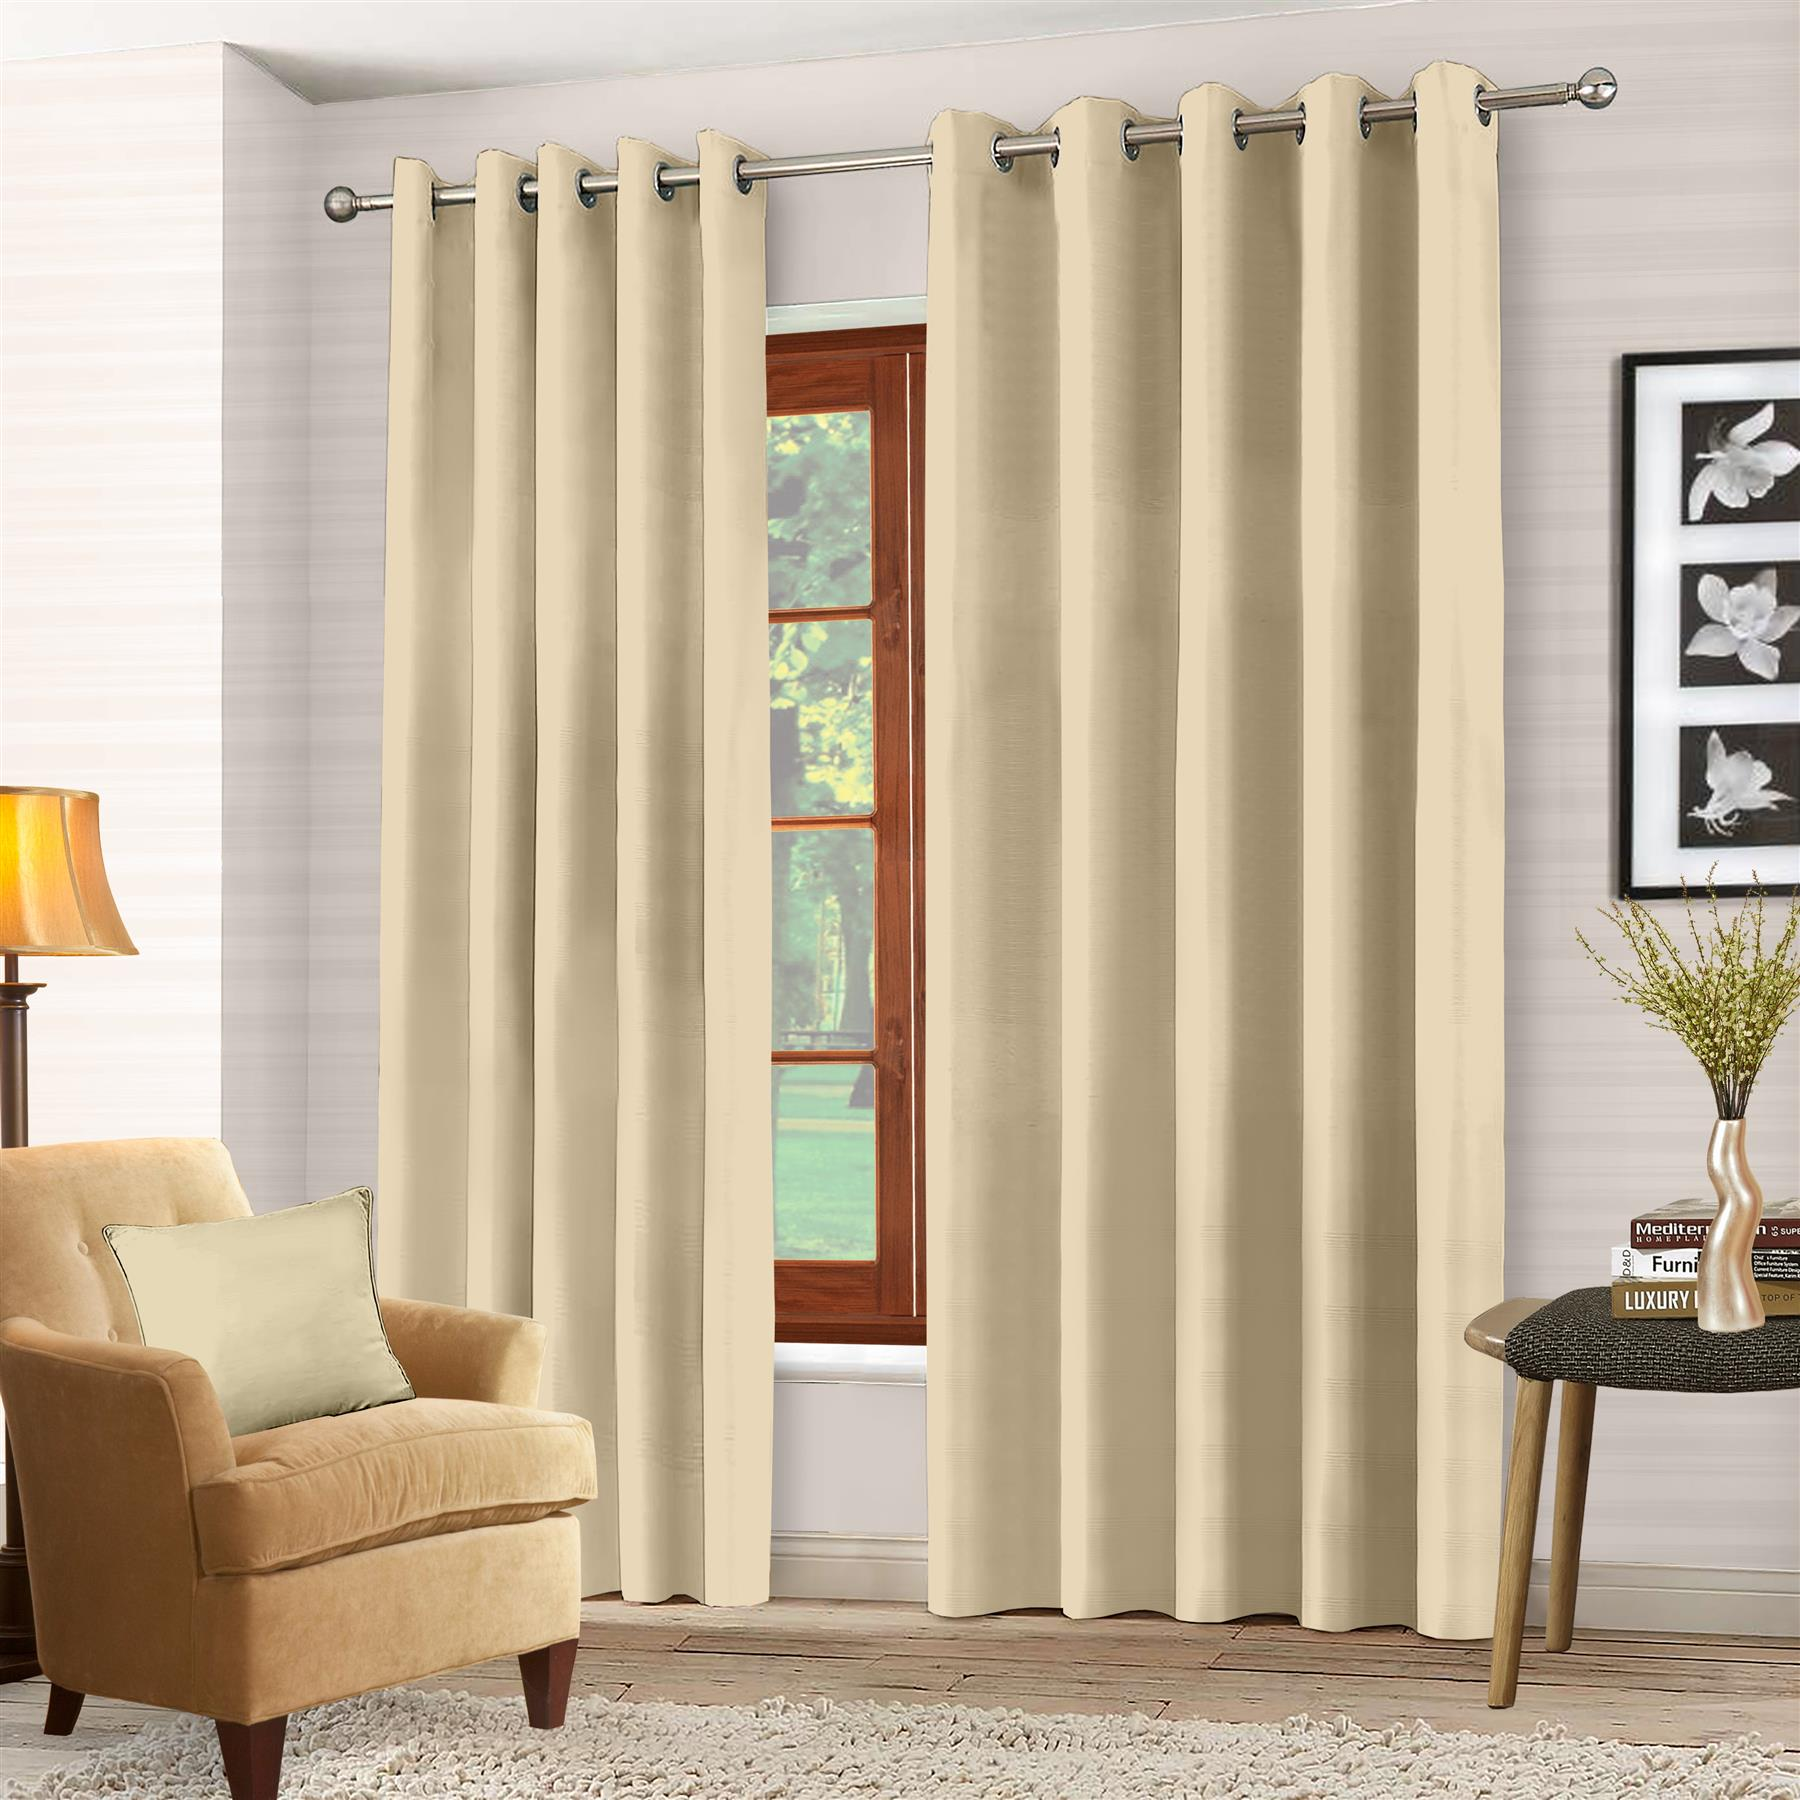 Luxury-Thermal-Blackout-Eyelet-Ring-Top-Curtains-Pair-with-tie-backs thumbnail 21